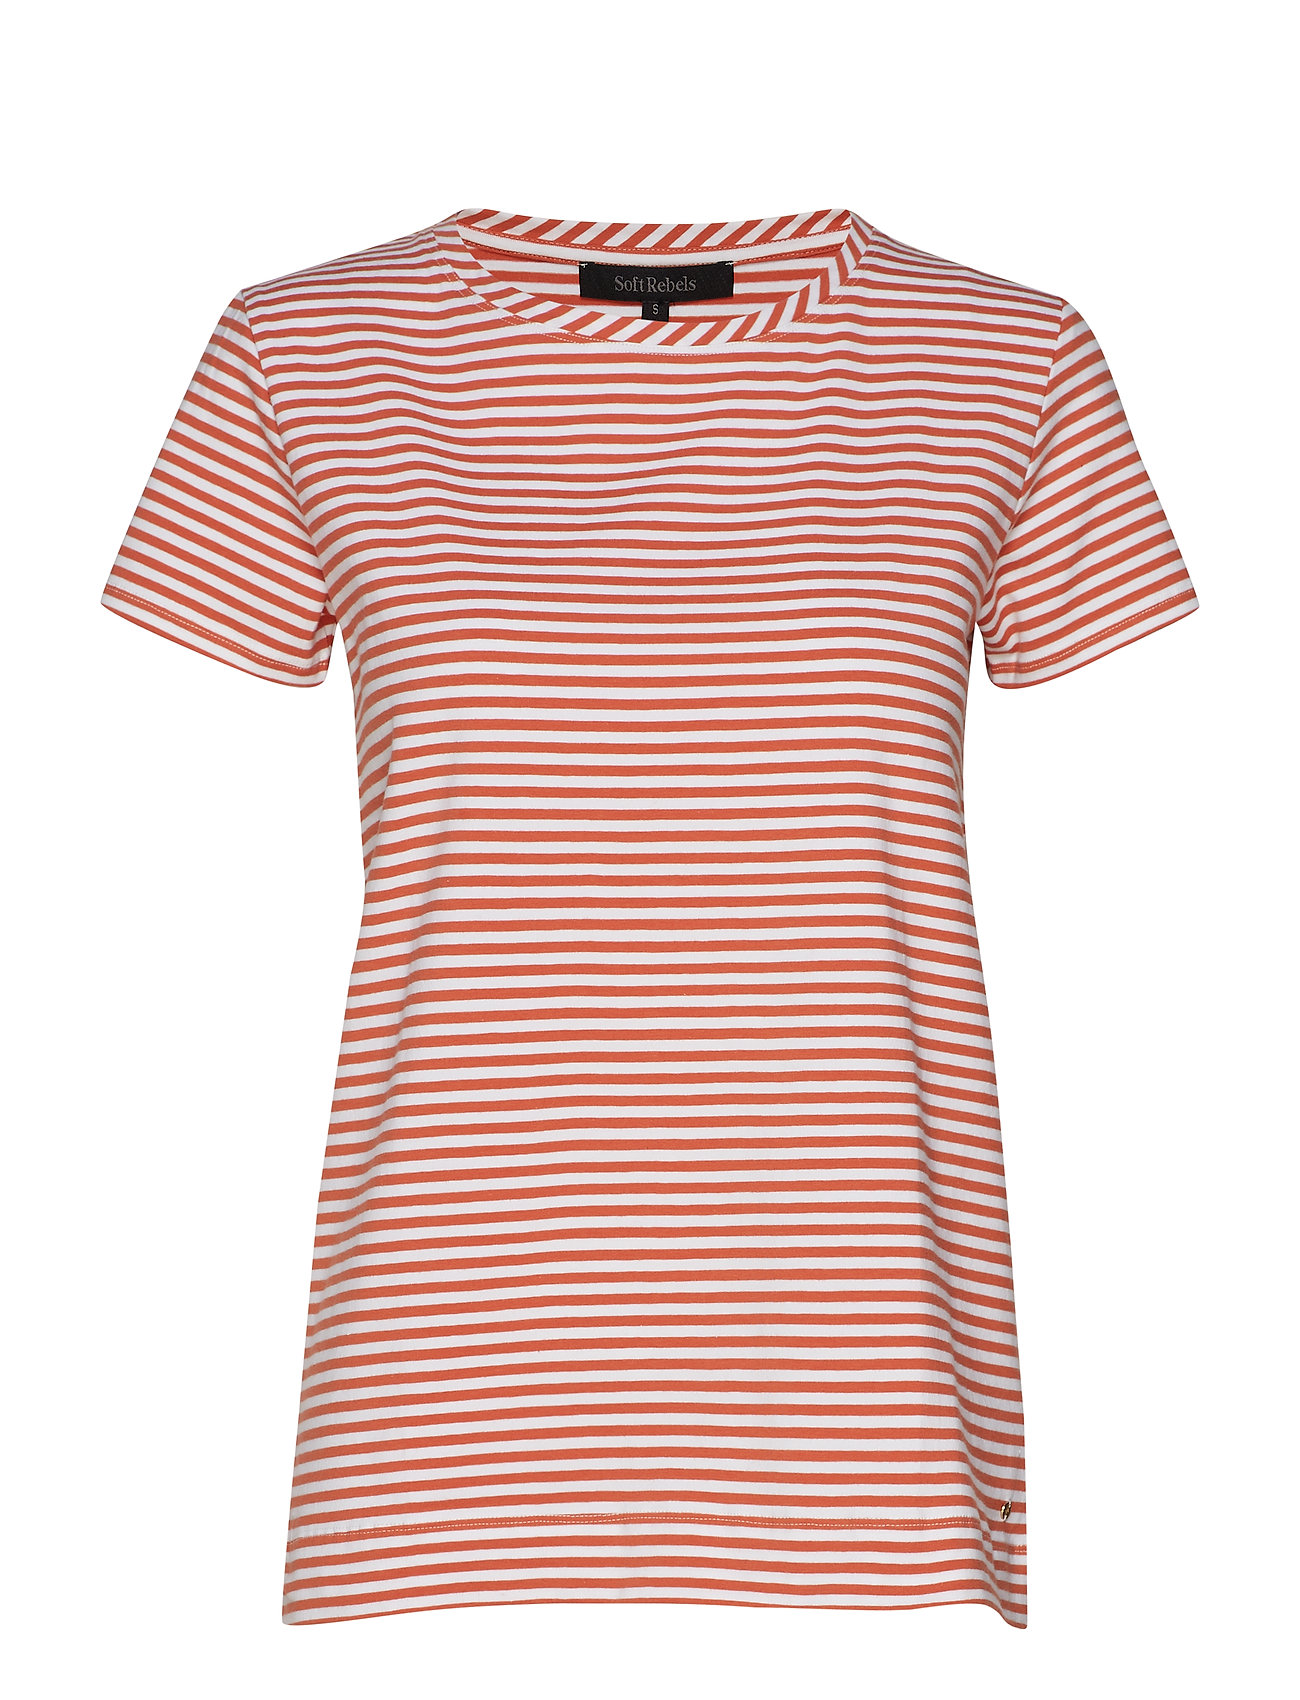 Soft Rebels Elle T-shirt y/d stripes - GINGER SPICE